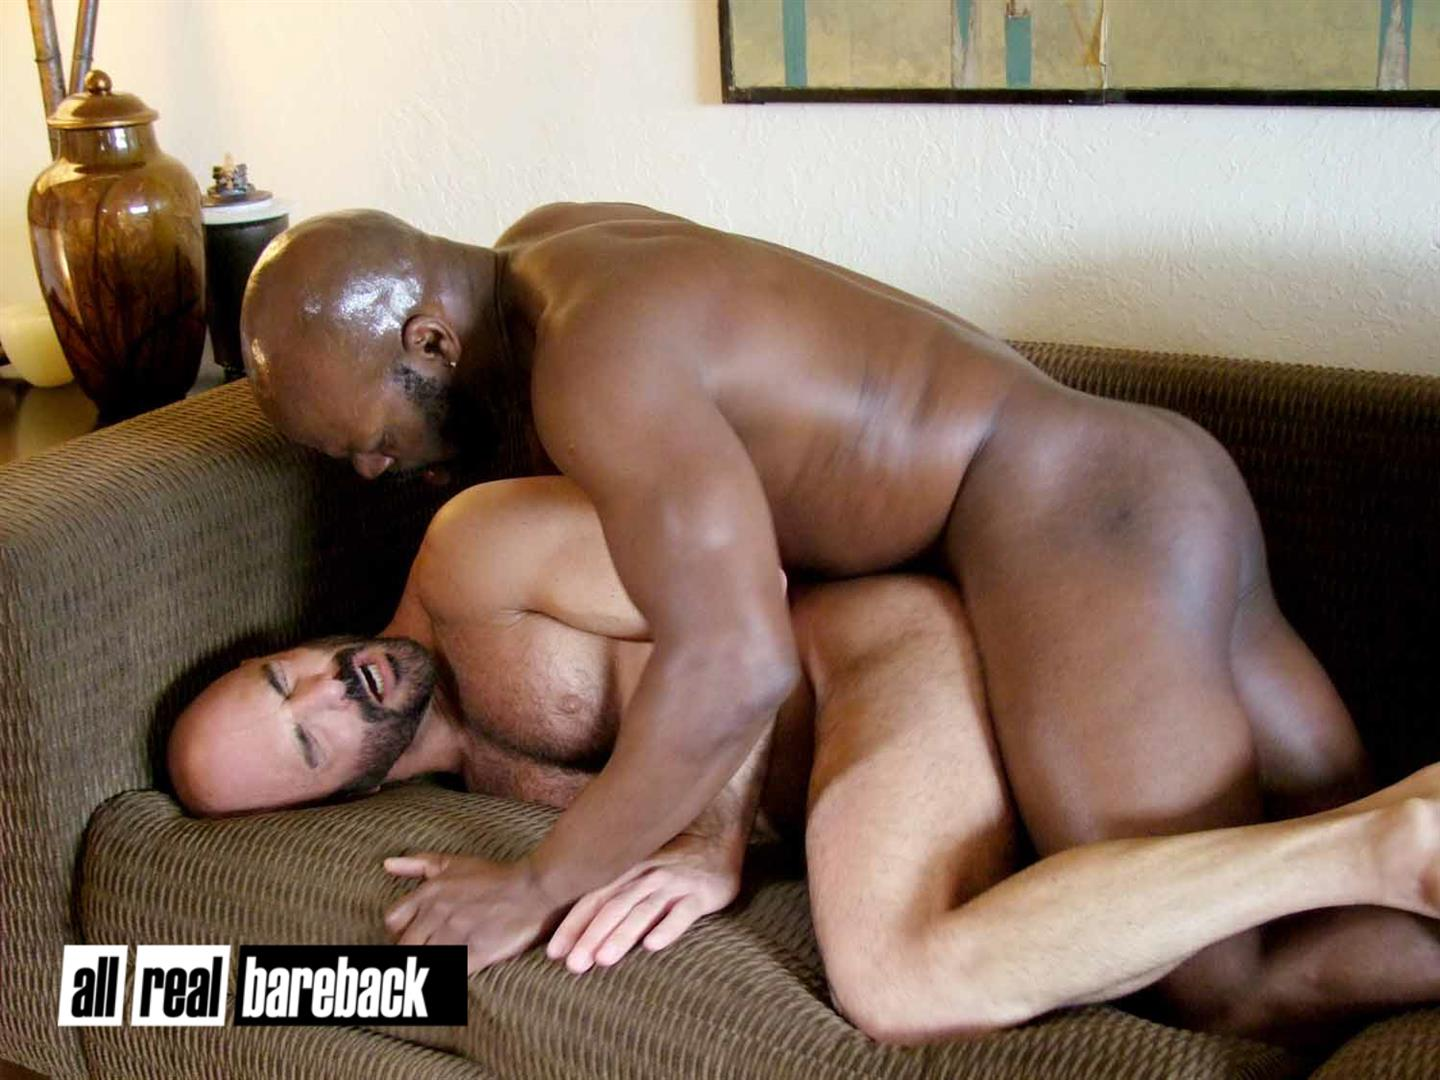 All-Real-Bareback-Cutler-X-and-Adam-Russo-Real-Life-Boyfriends-Barebacking-Amateur-Gay-Porn-09 Cutler X Films His First Ever Bareback Video With Real Life BF Adam Russo